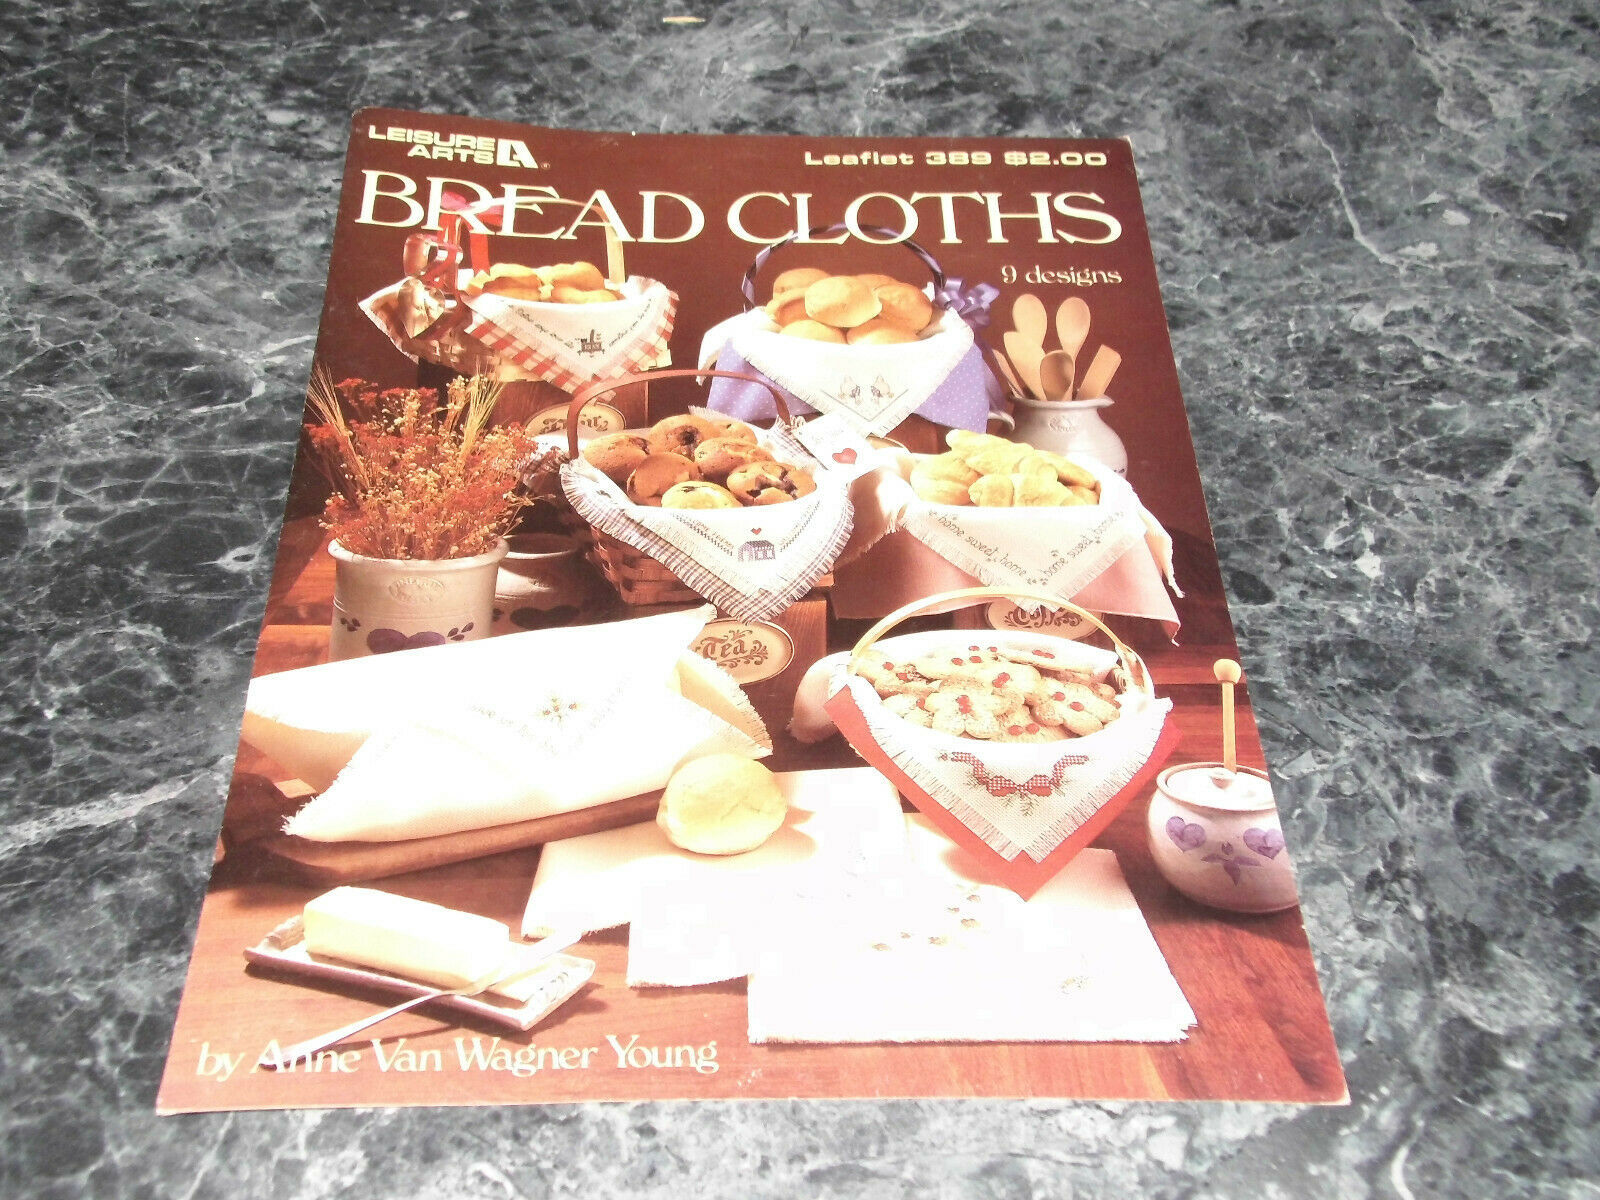 Primary image for Bread Cloths by Anne Van Wagner Young 9 Designs Leaflet 389 Leisure Arts